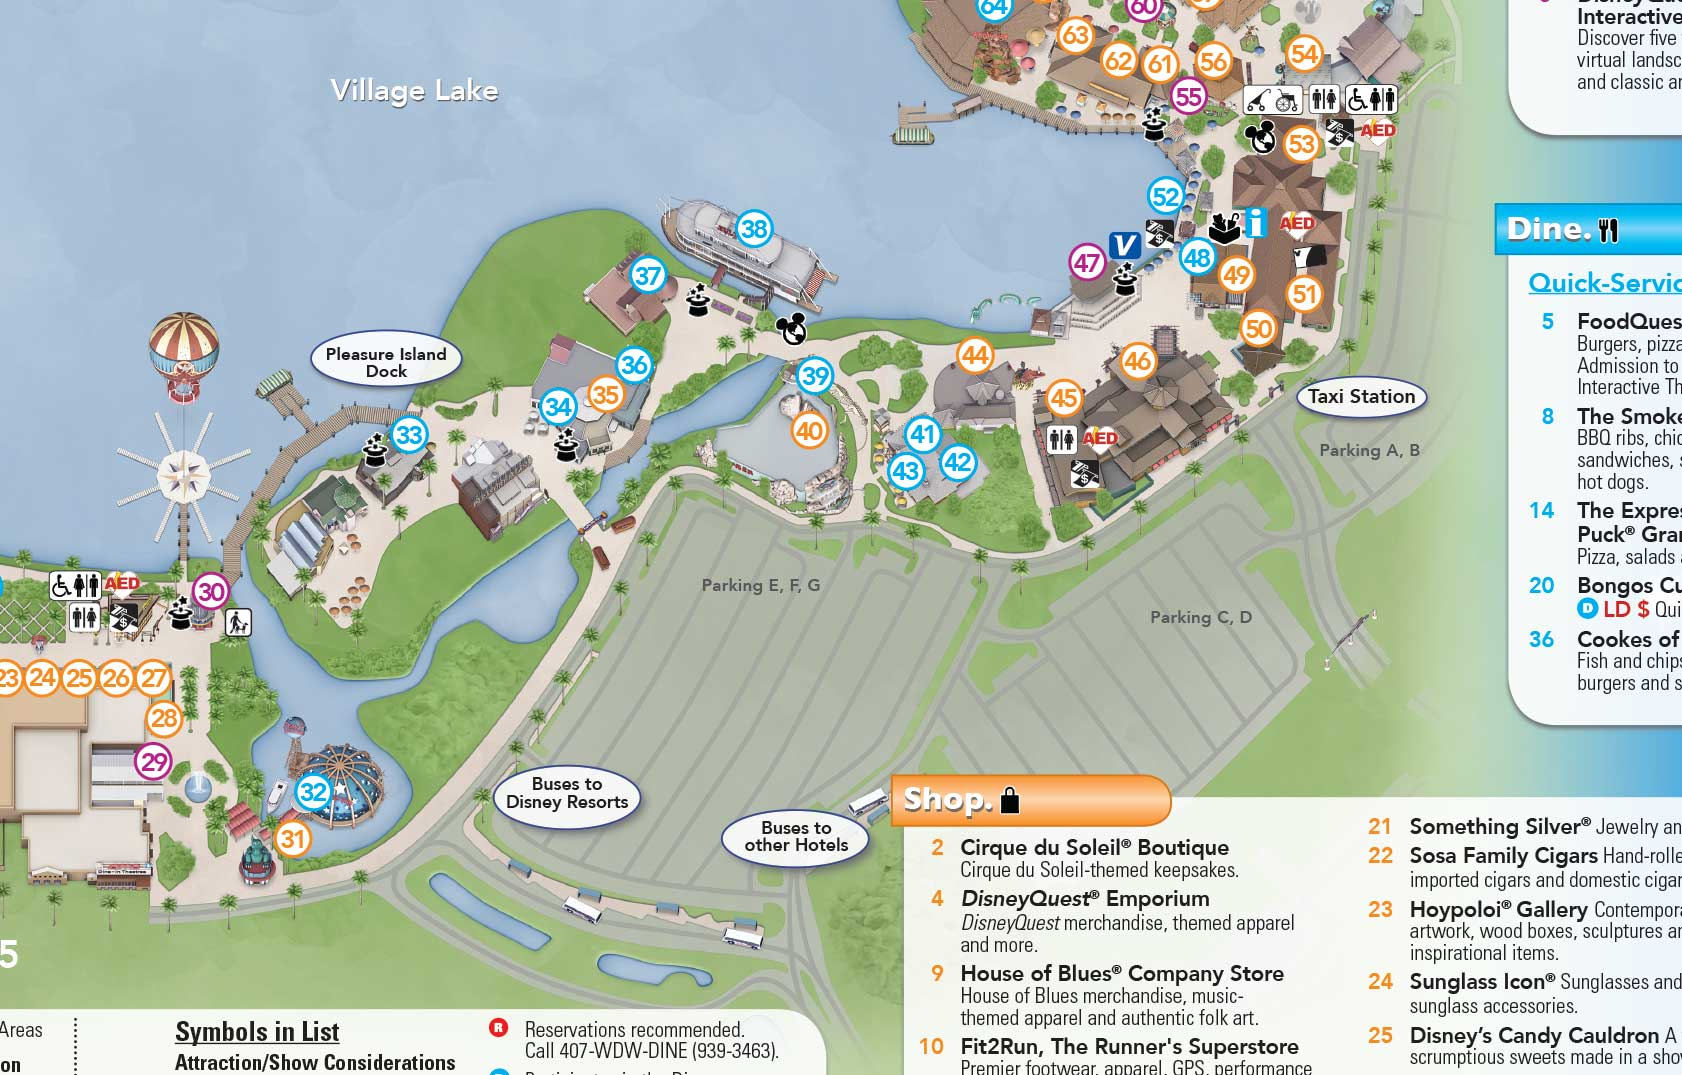 More parking lots to close at Downtown Disney for Disney Springs